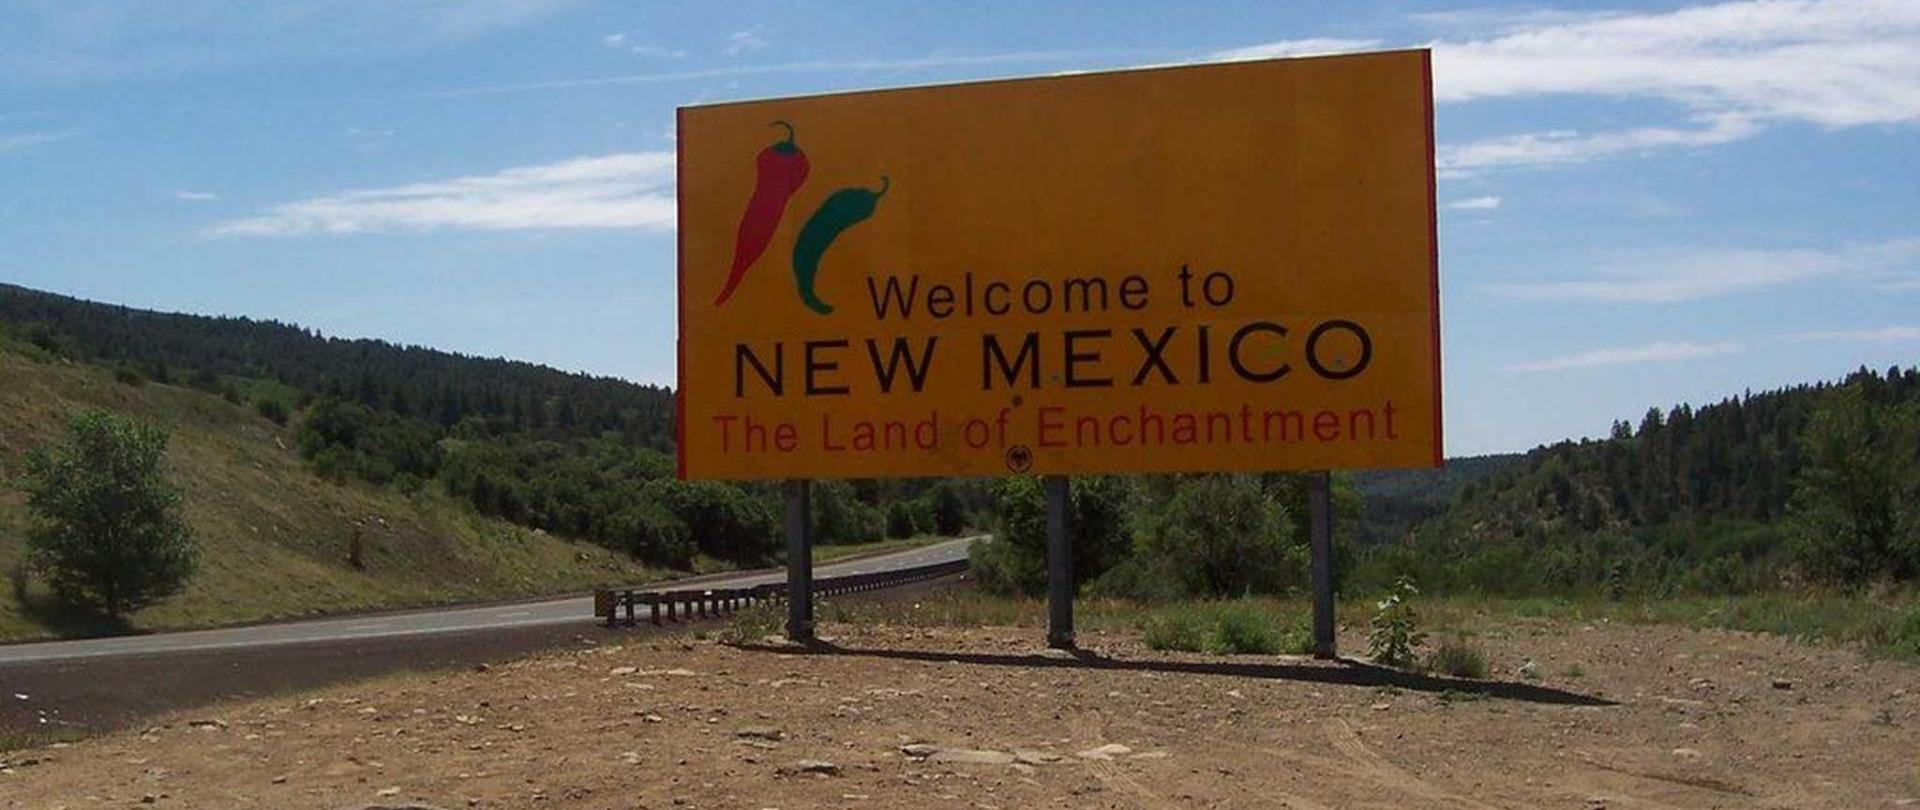 welcome-to-new-mexico.jpg.1920x0.jpg